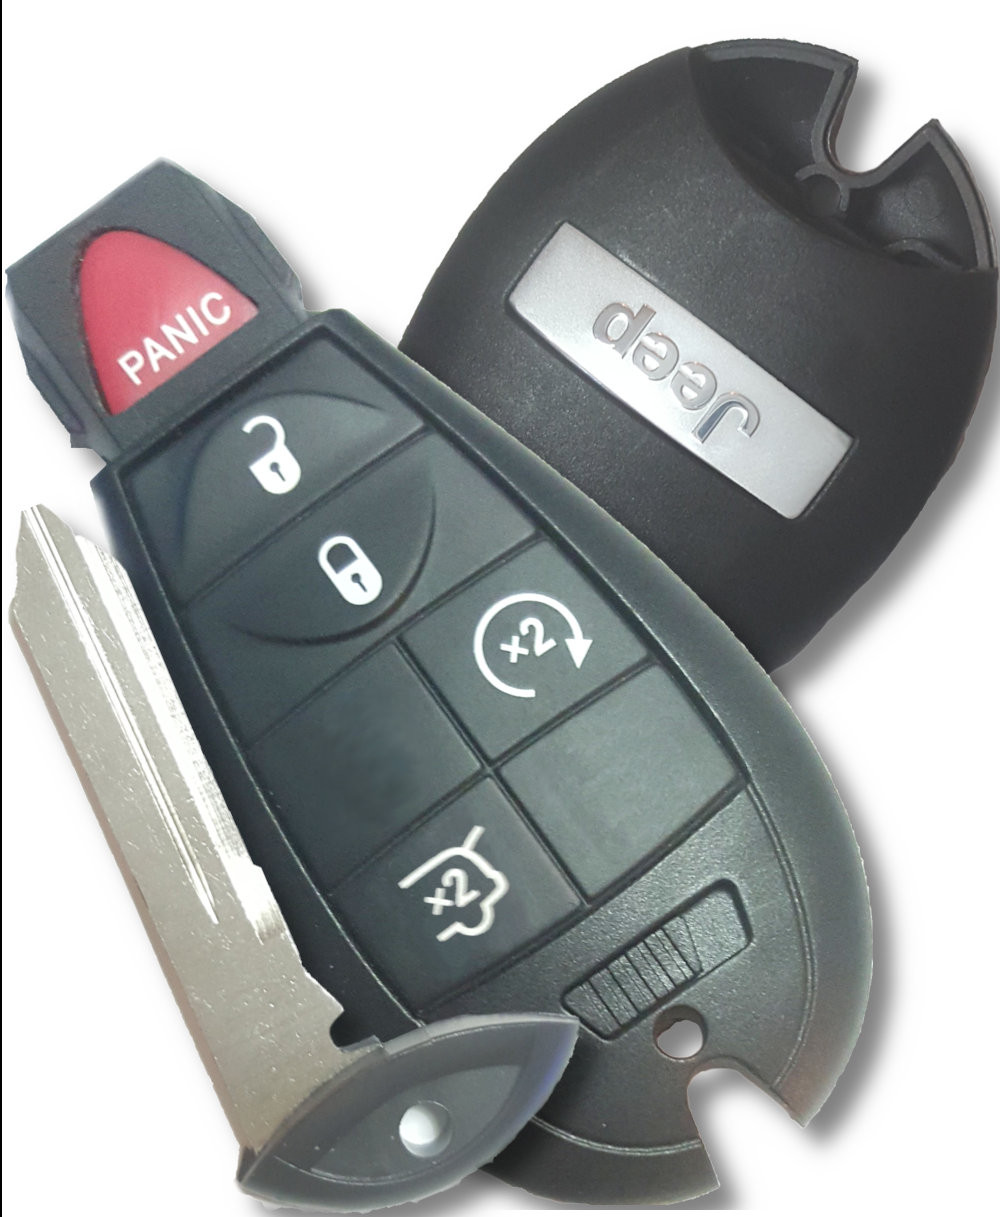 NEW Keyless Entry Key Fob Remote For a 2012 Jeep Grand Cherokee 3 Buttons